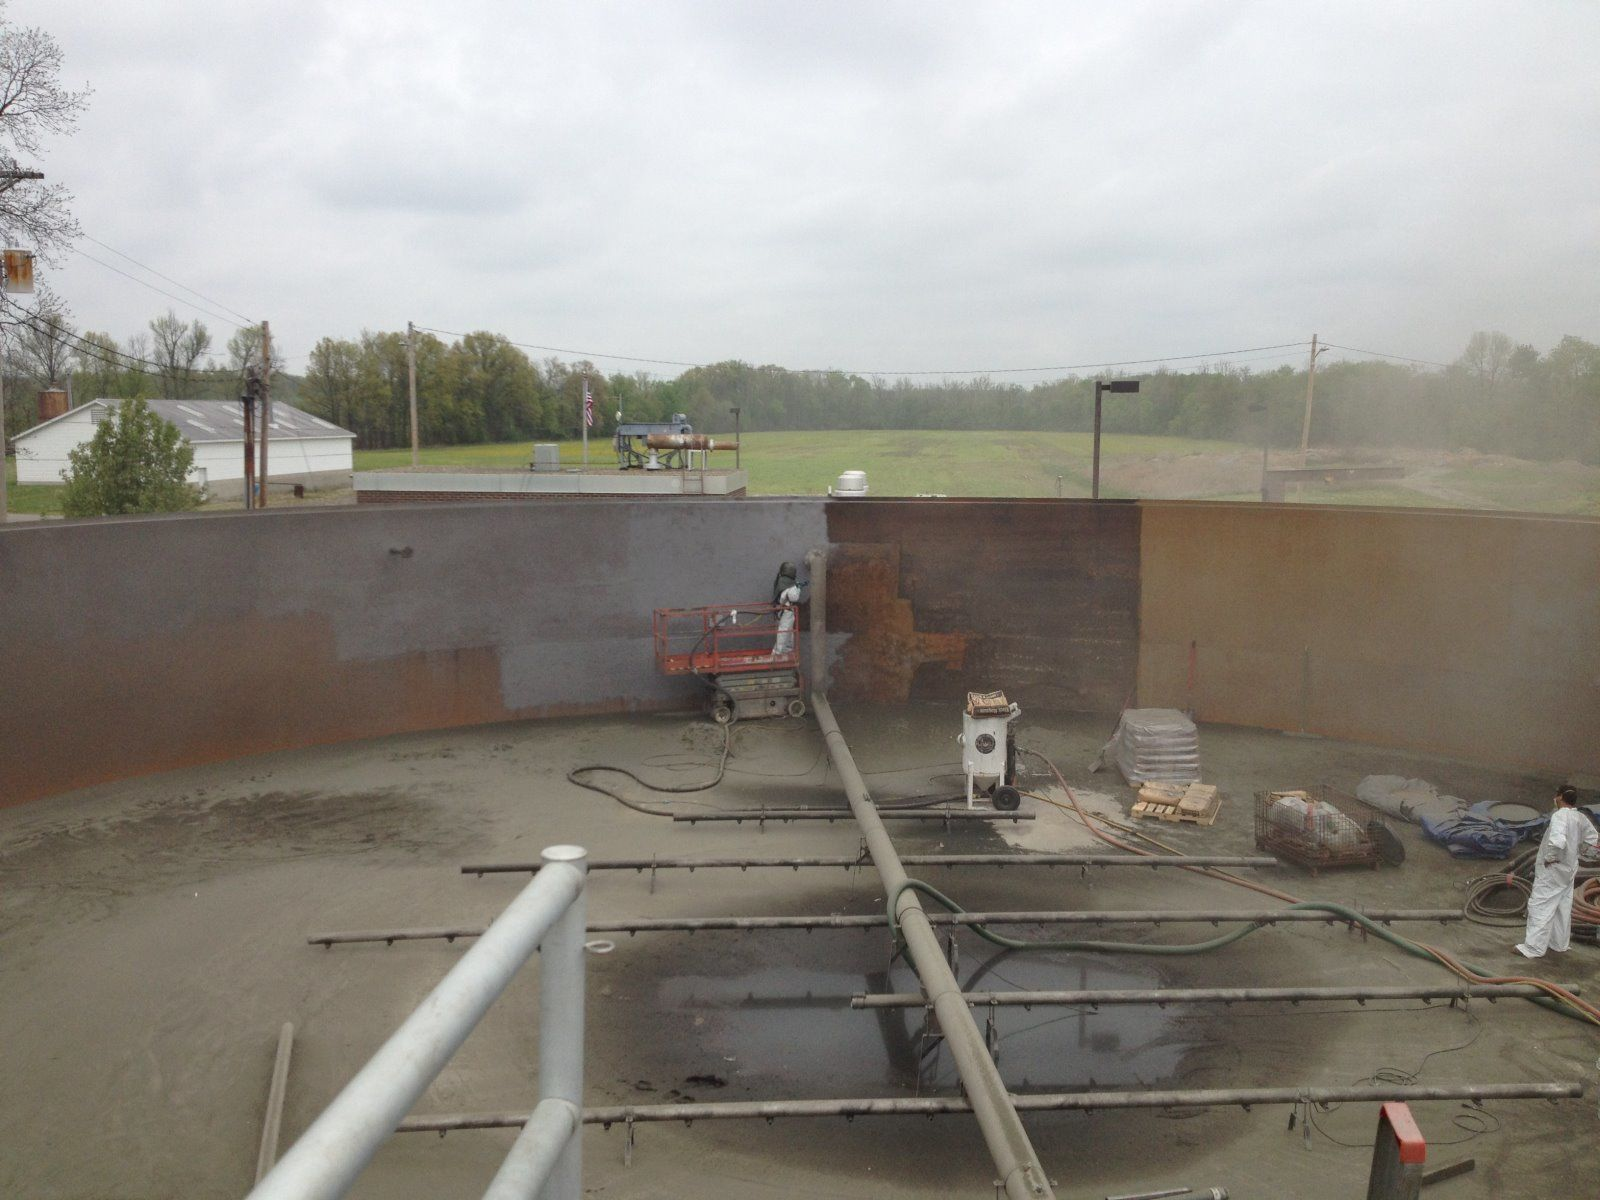 Waste Water Treatment Tank - Scottsburg, Indiana - Sandblasting 500,000 Gallons - Abrasive Blast, Paint Removal, WWPT, Industrial, Stripping